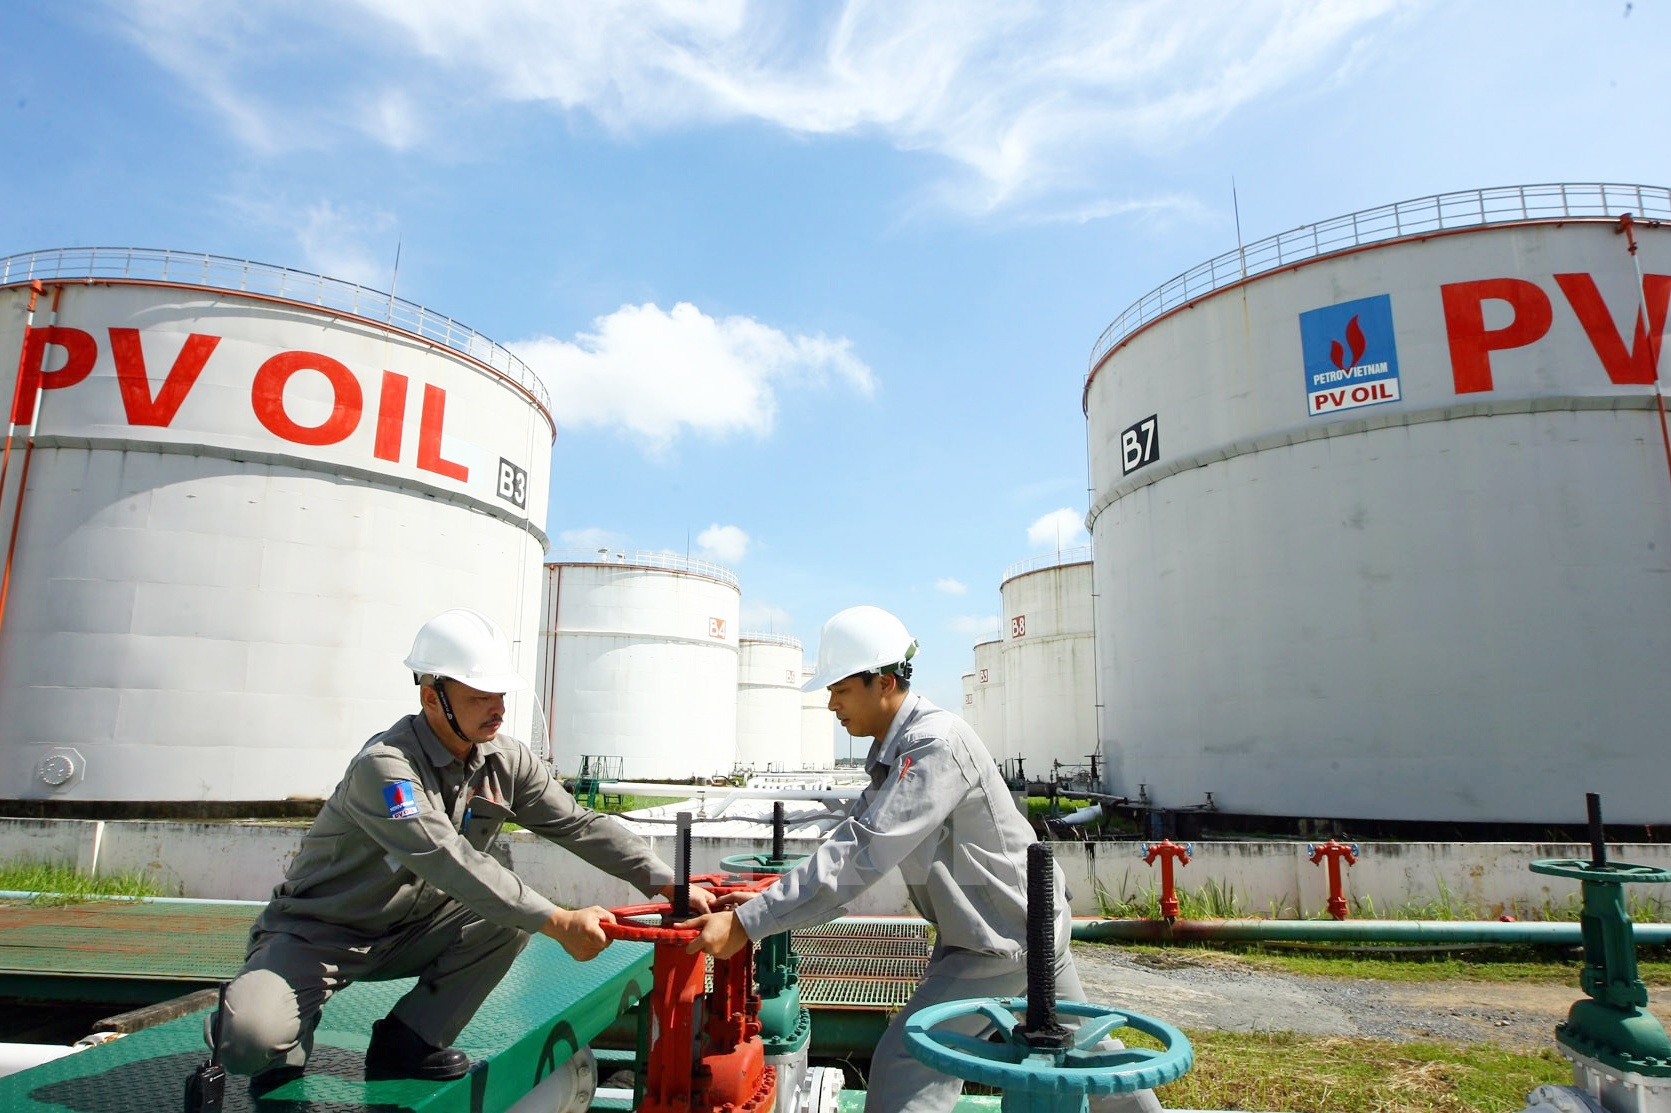 PV Oil issues hard criteria for strategic investors, vietnam economy, business news, vn news, vietnamnet bridge, english news, Vietnam news, news Vietnam, vietnamnet news, vn news, Vietnam net news, Vietnam latest news, Vietnam breaking news